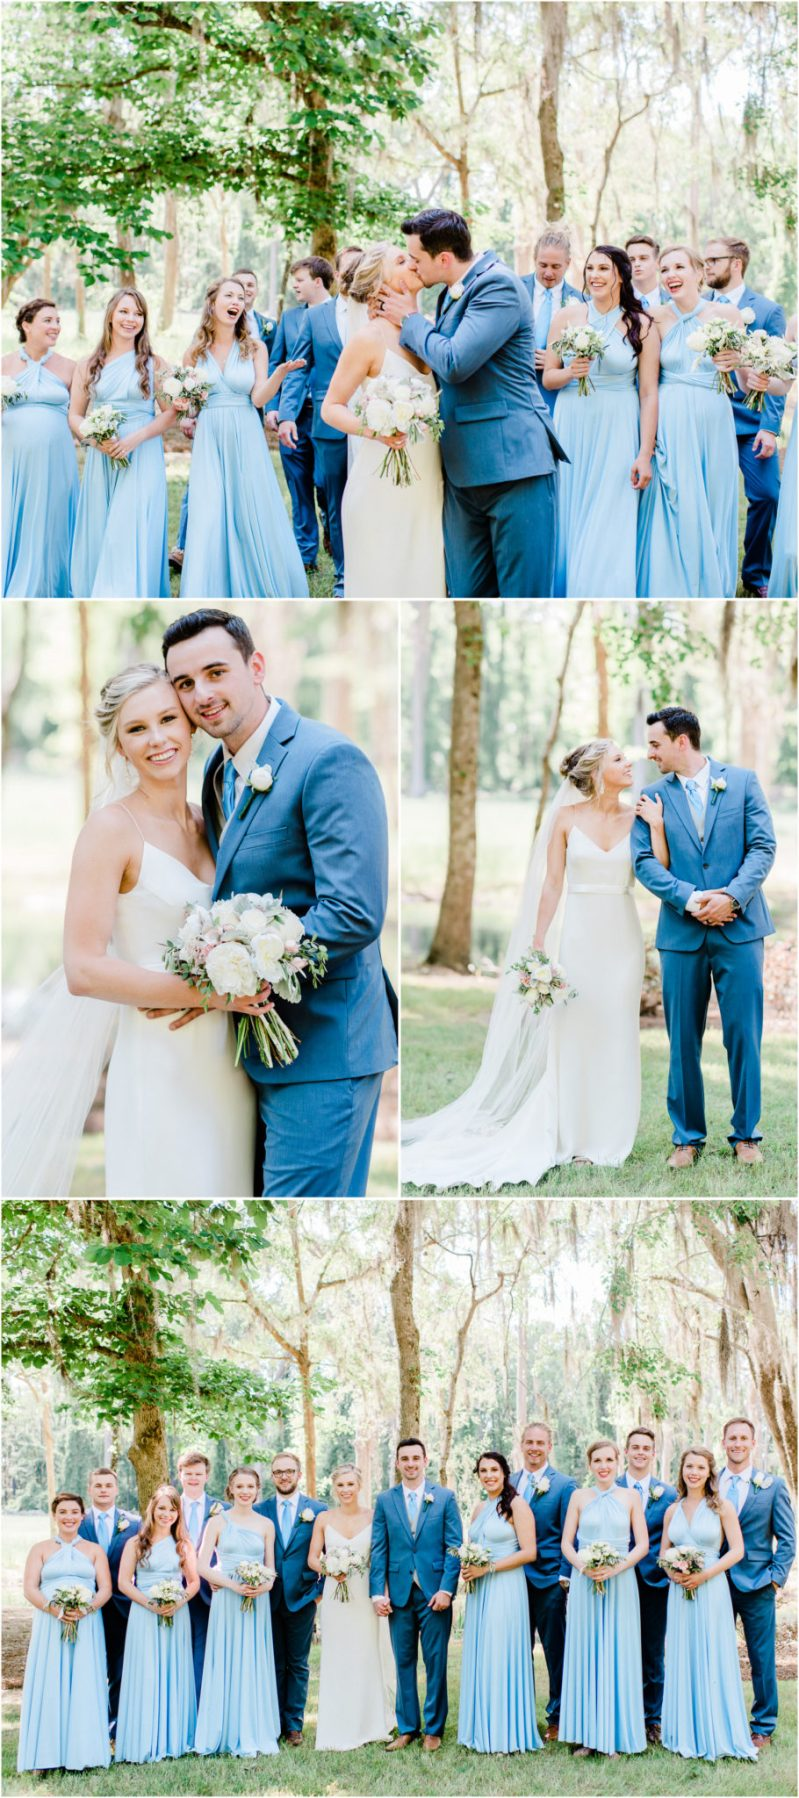 Millstone at Adams Pond Wedding in Columbia, SC Bridal Party Photos